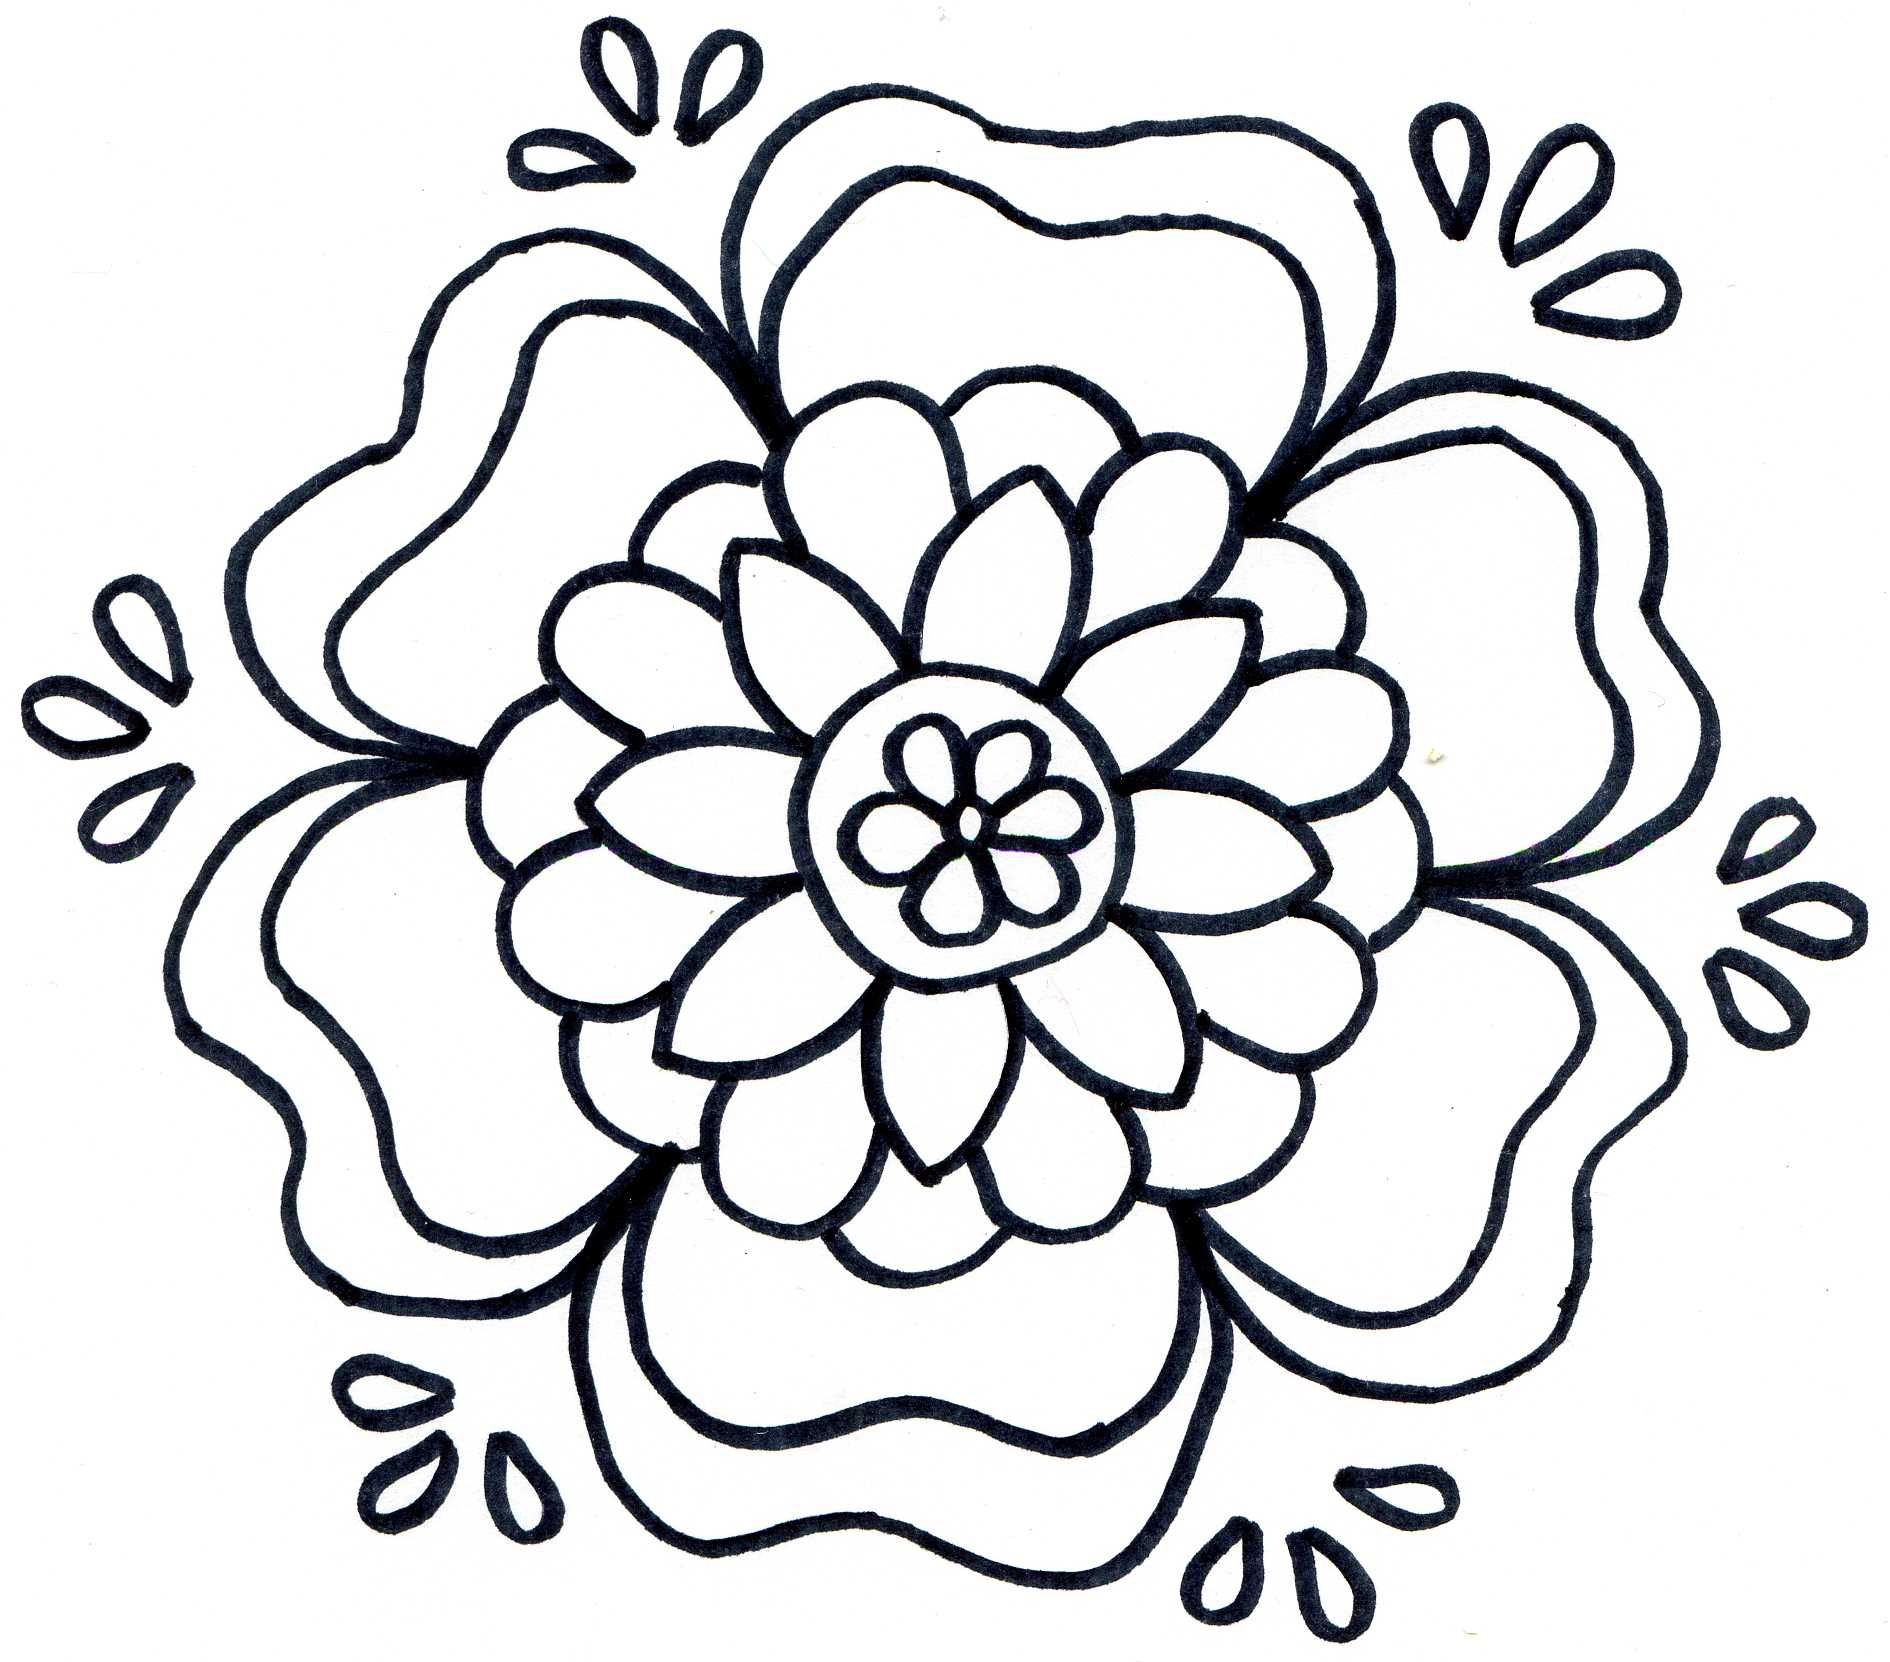 Rosmaling coloring pages | Patterns, Embroidery and Beadwork